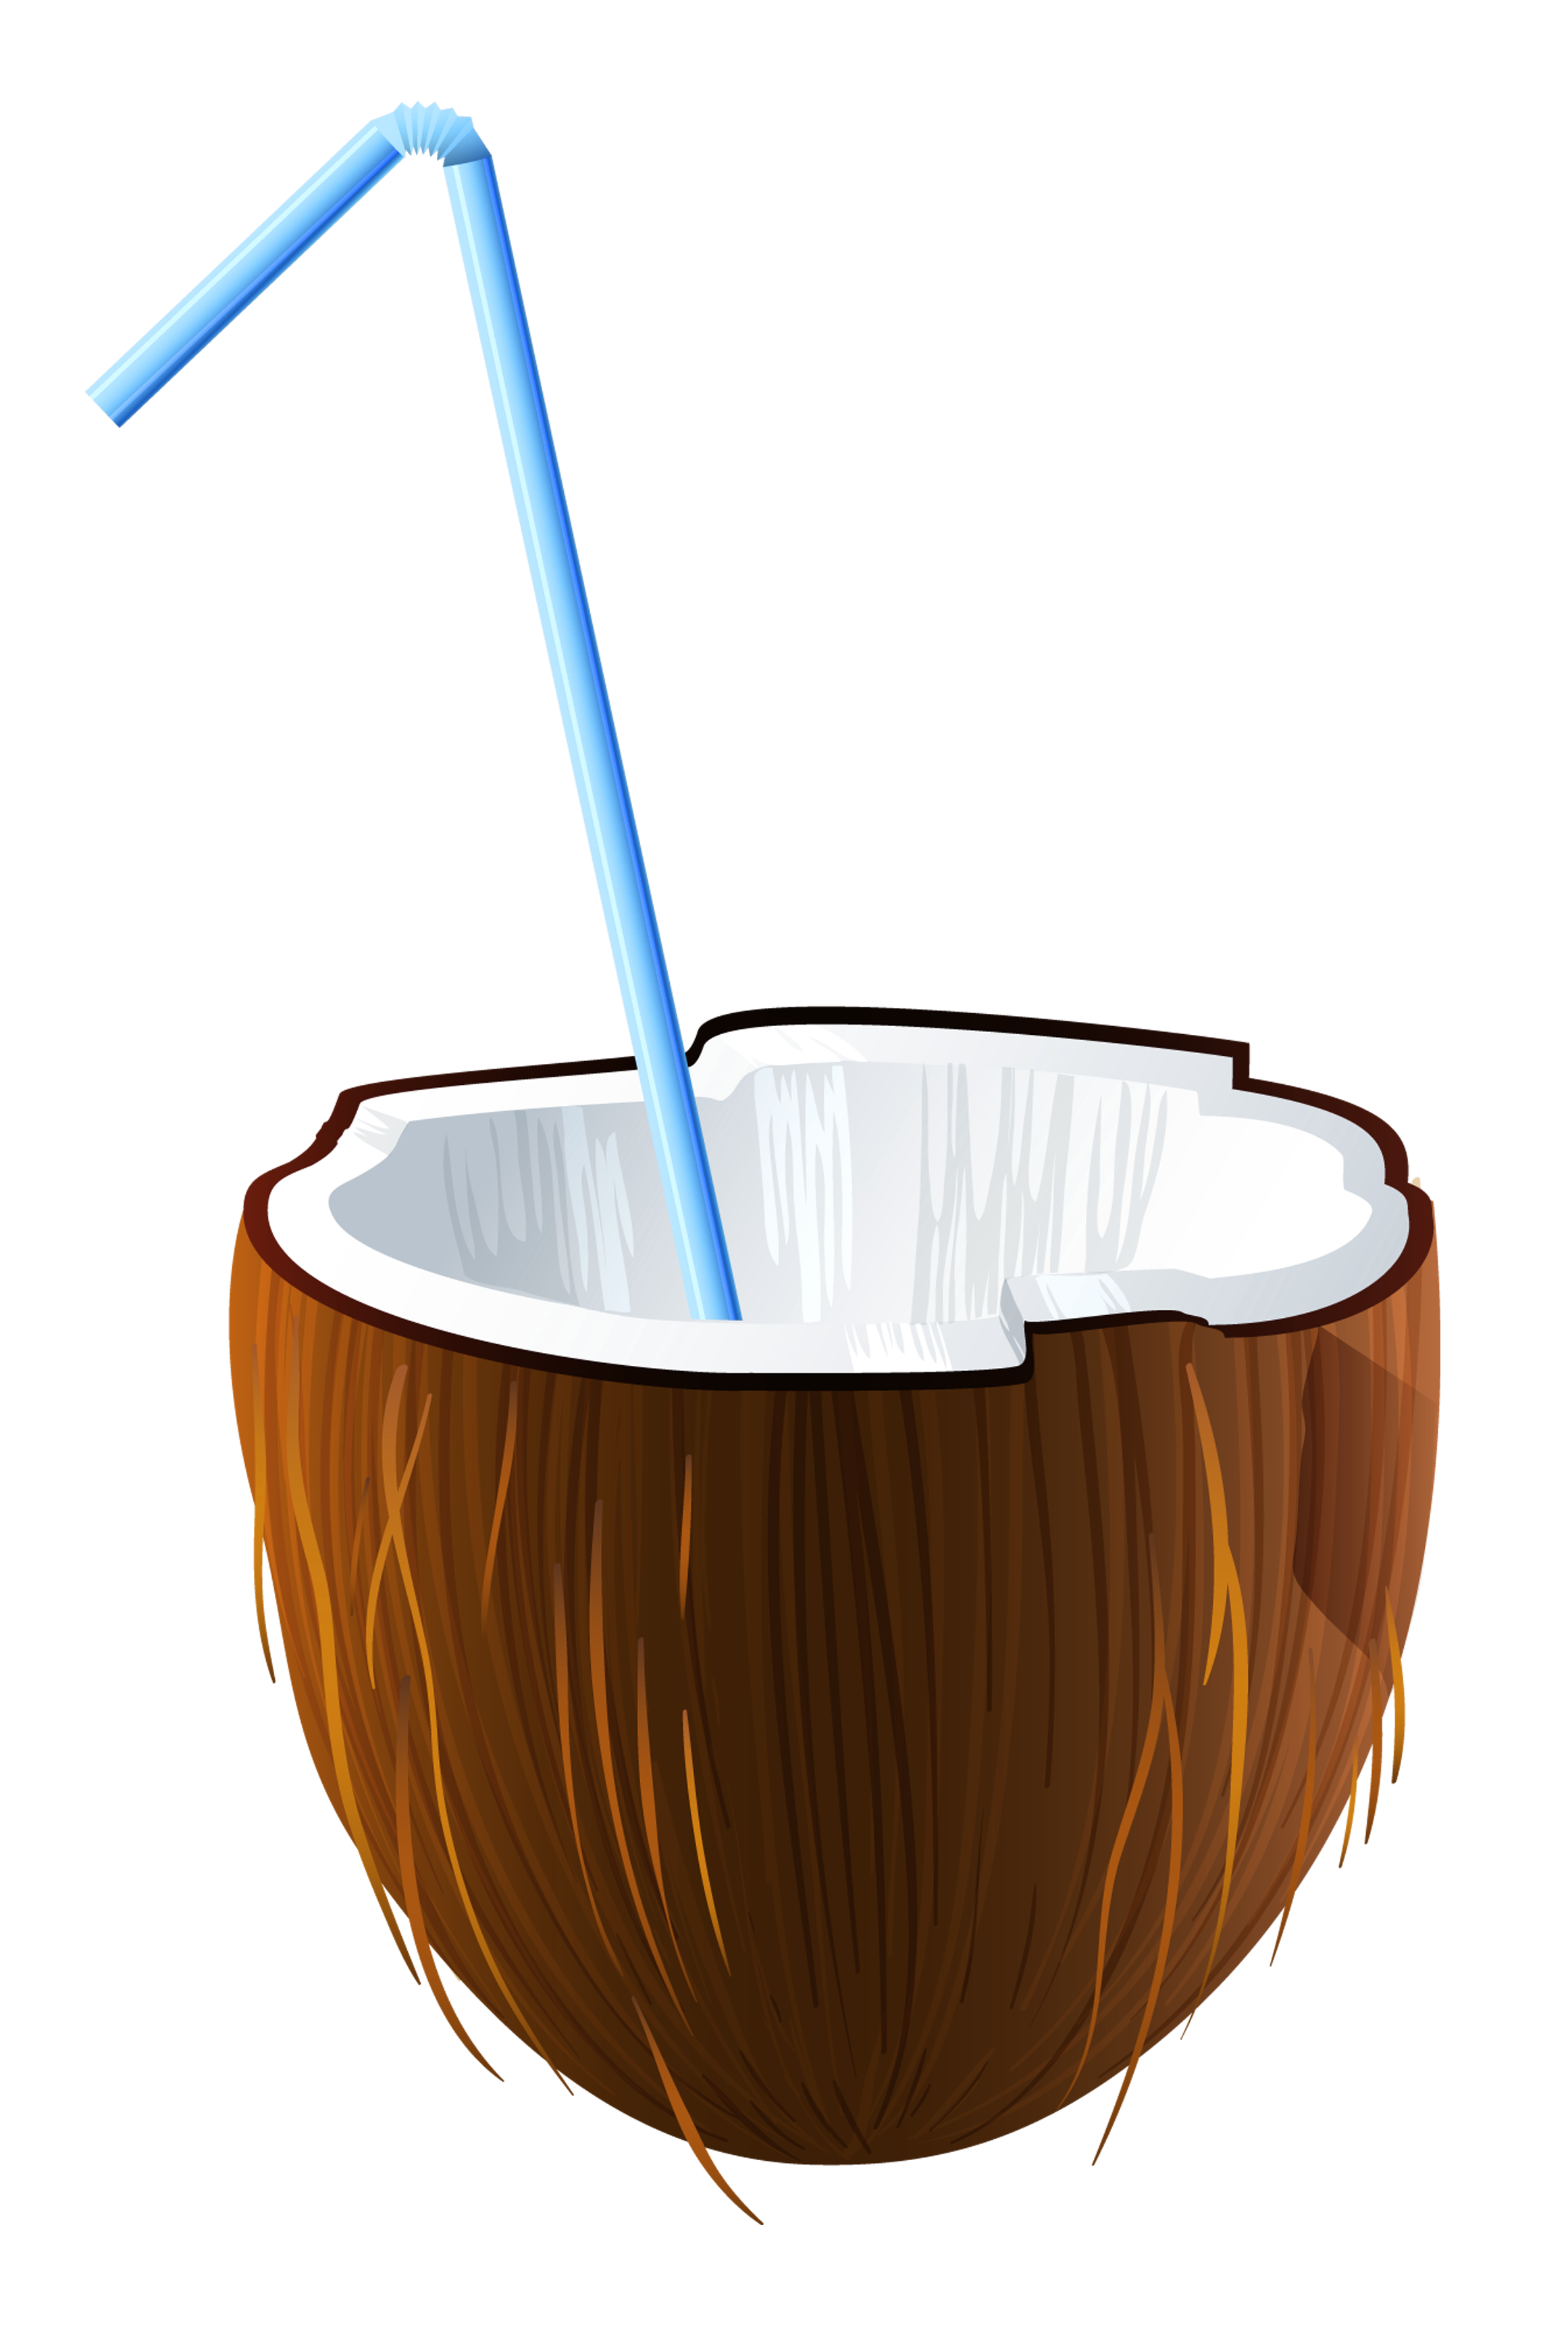 Cocktail clipart summer. Coconut png gallery yopriceville